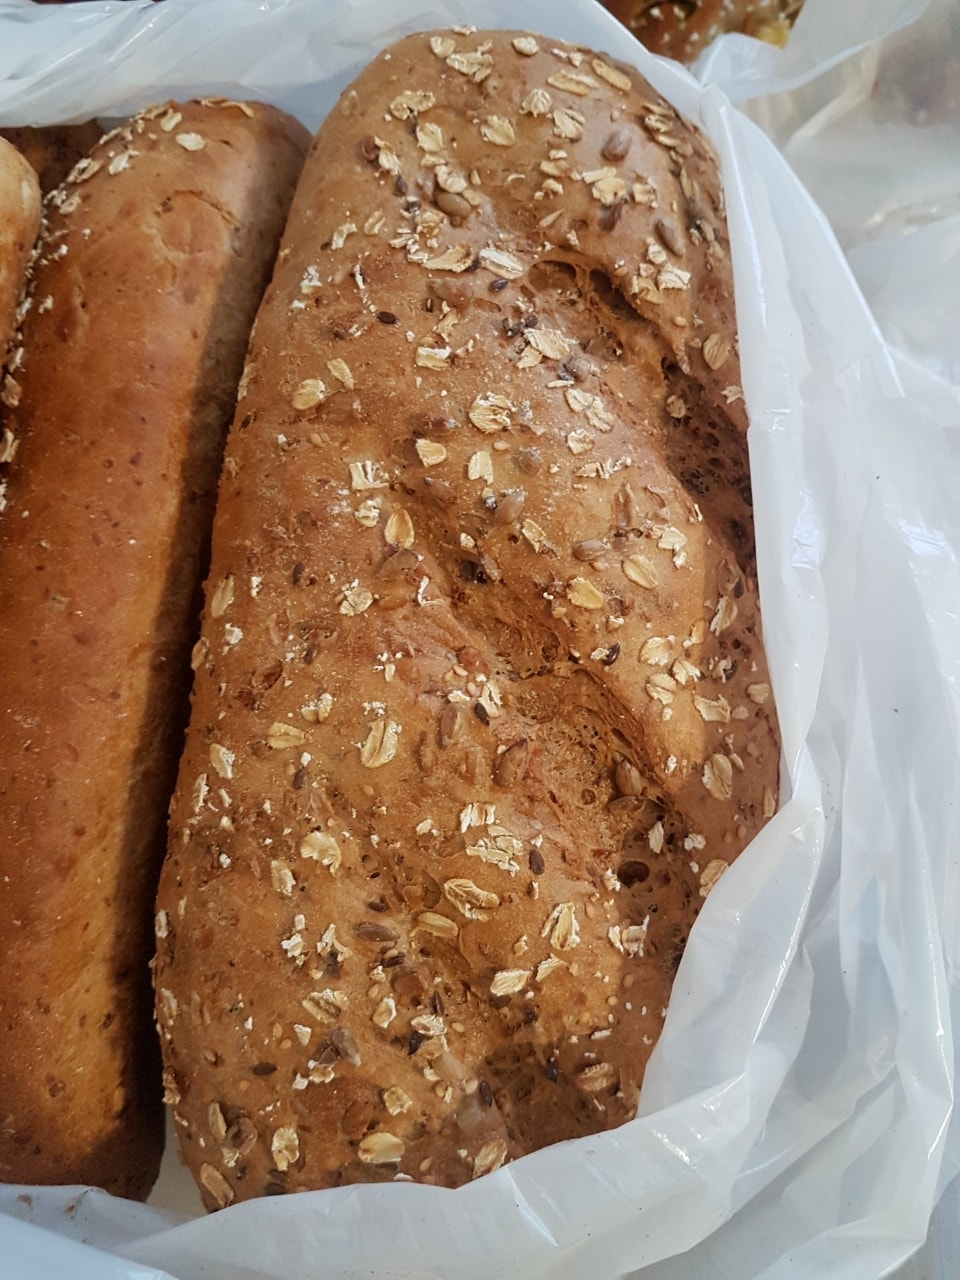 Bread loaf with oats